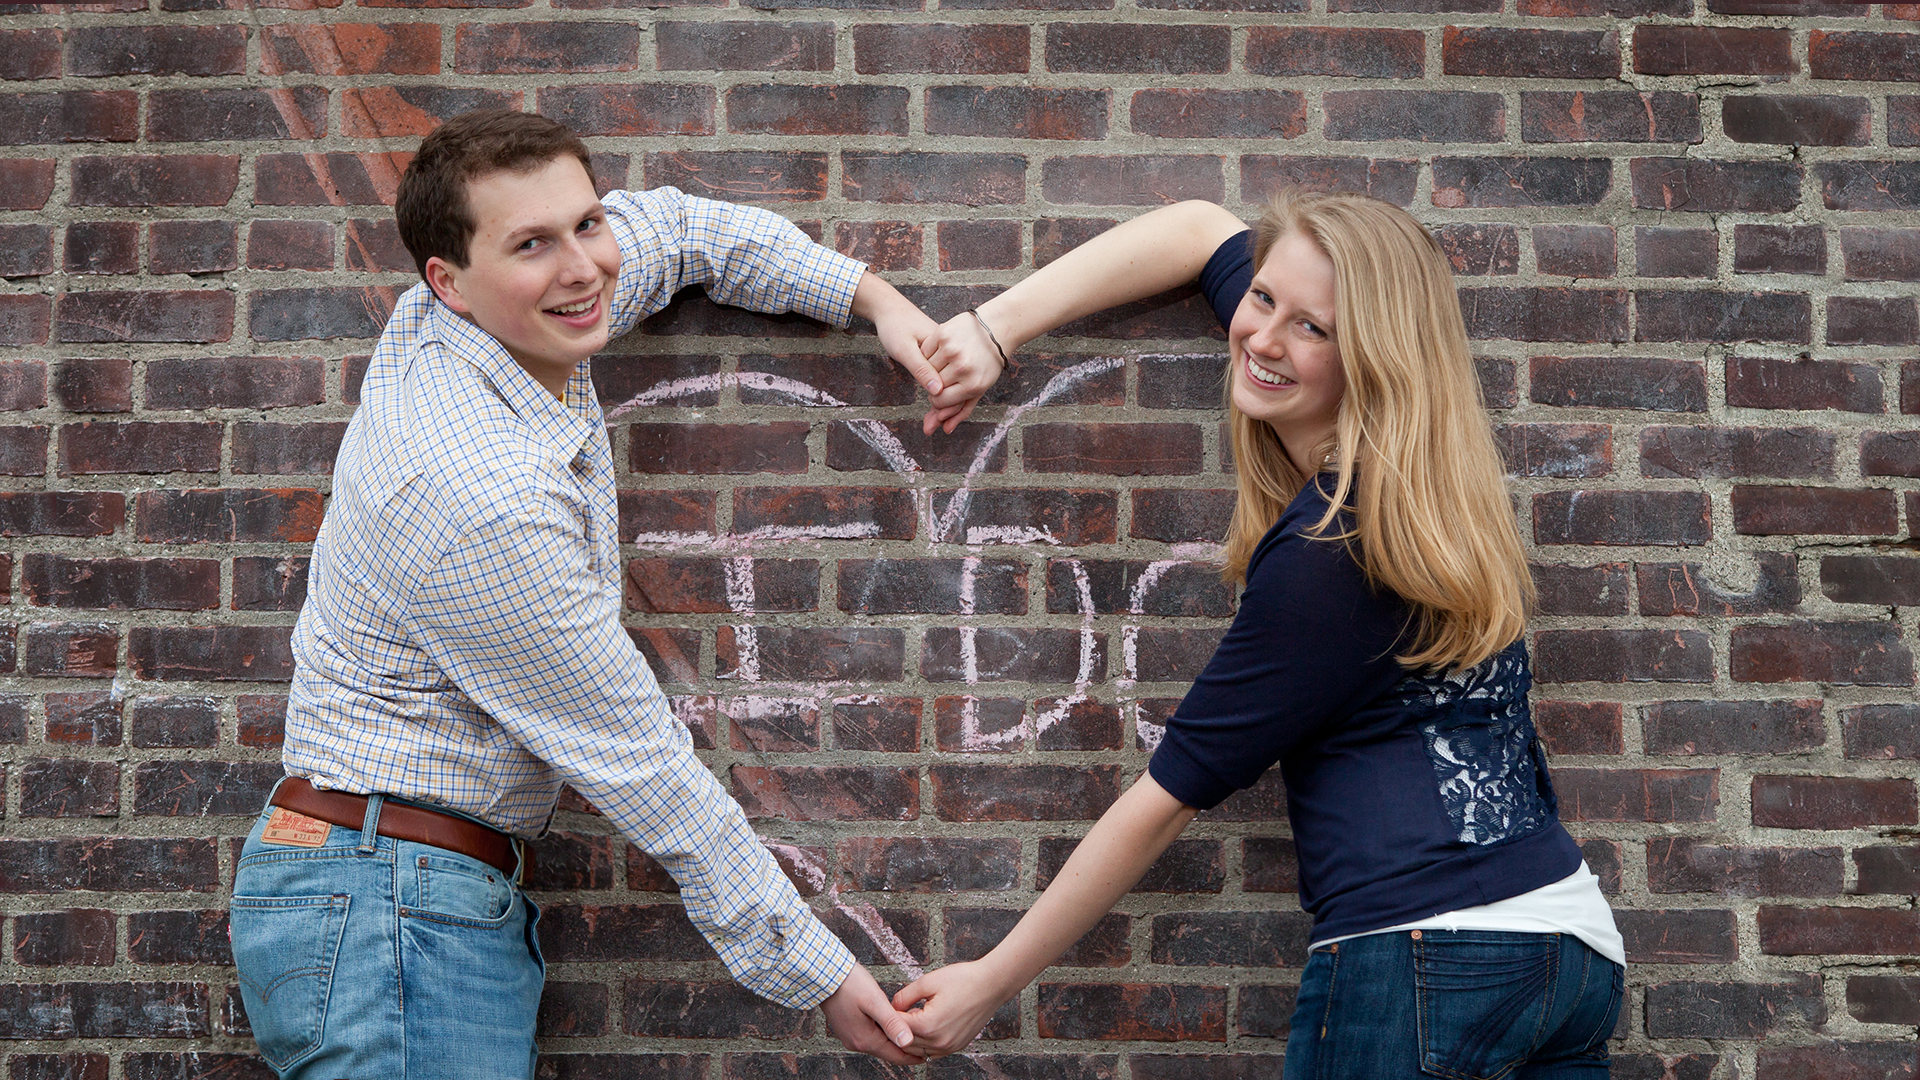 Fun Engagement Session Ideas